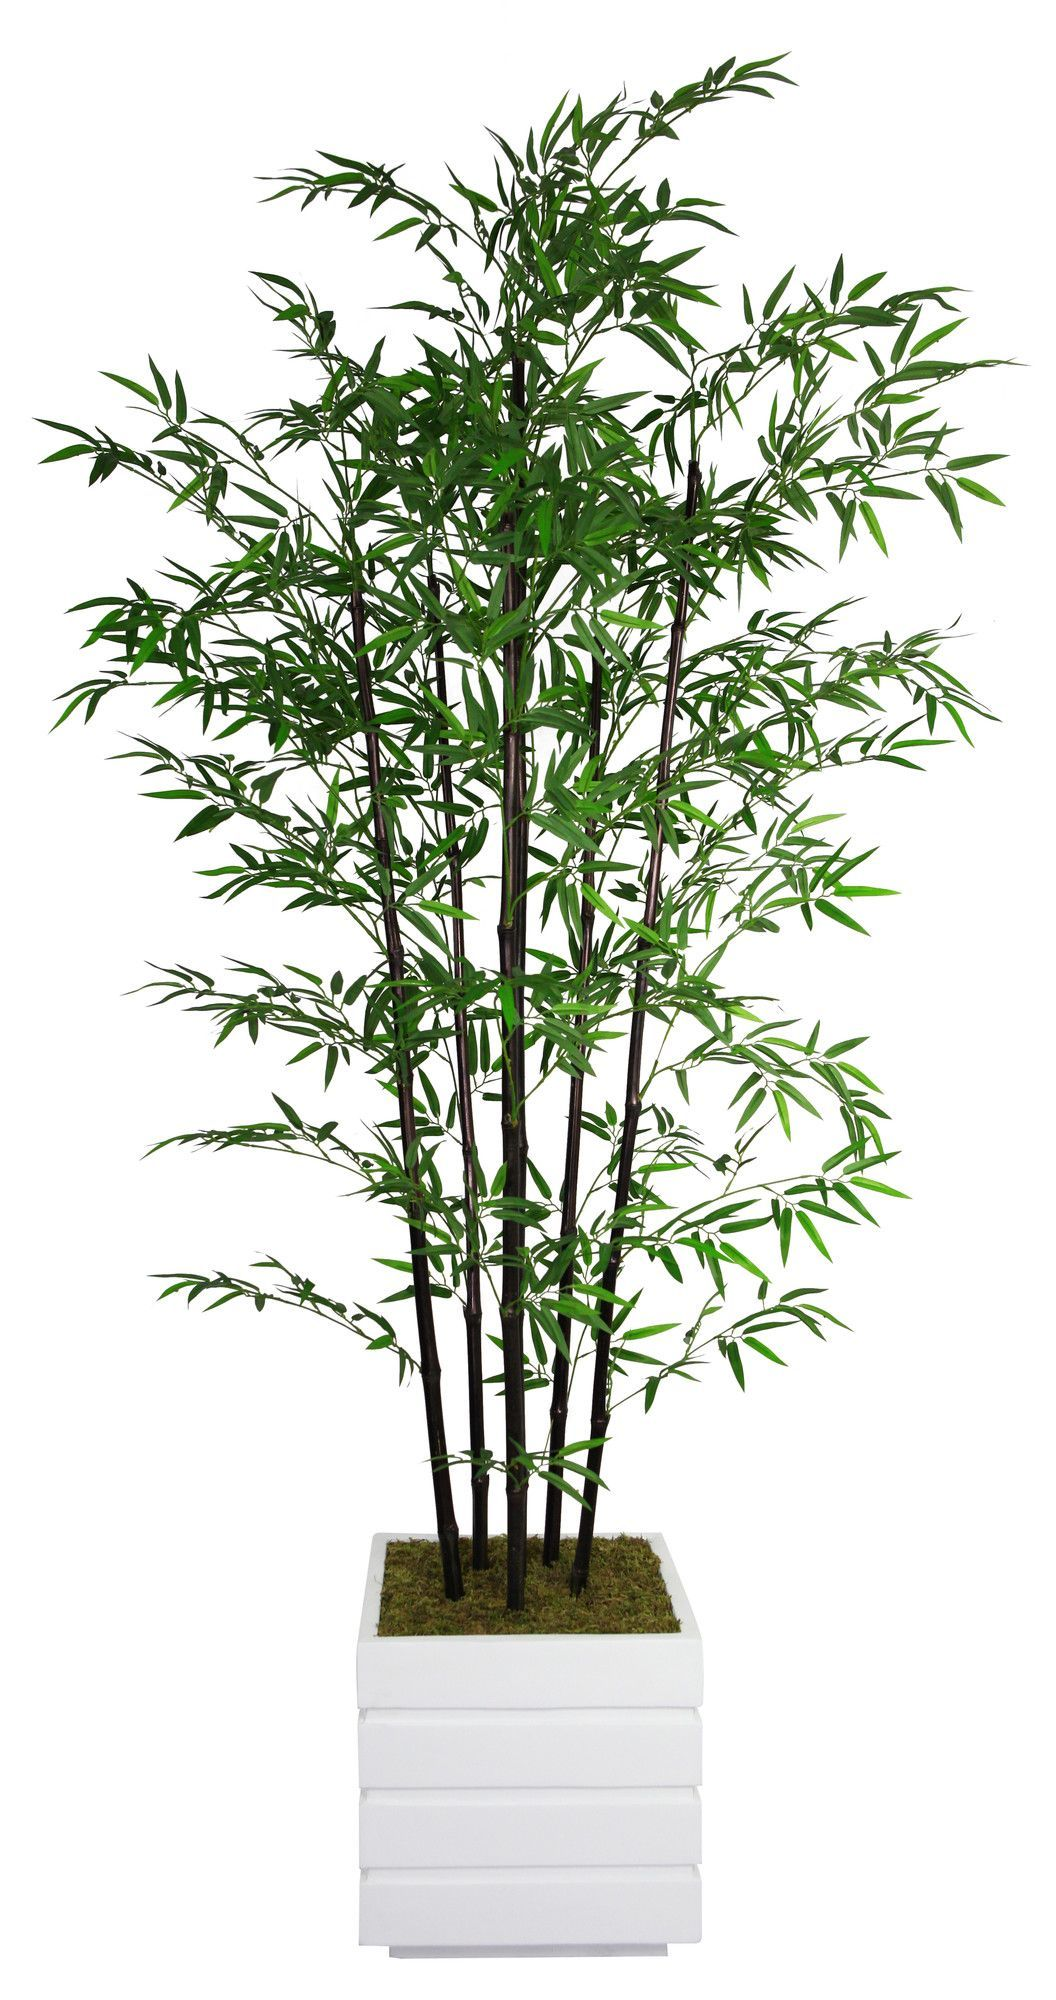 Features:  -No need to shop for a planter separately - comes complete with decorative planter.  -Artificial plants let you decorate without concern for water damage, trimming or soil.  -Bamboo plant.